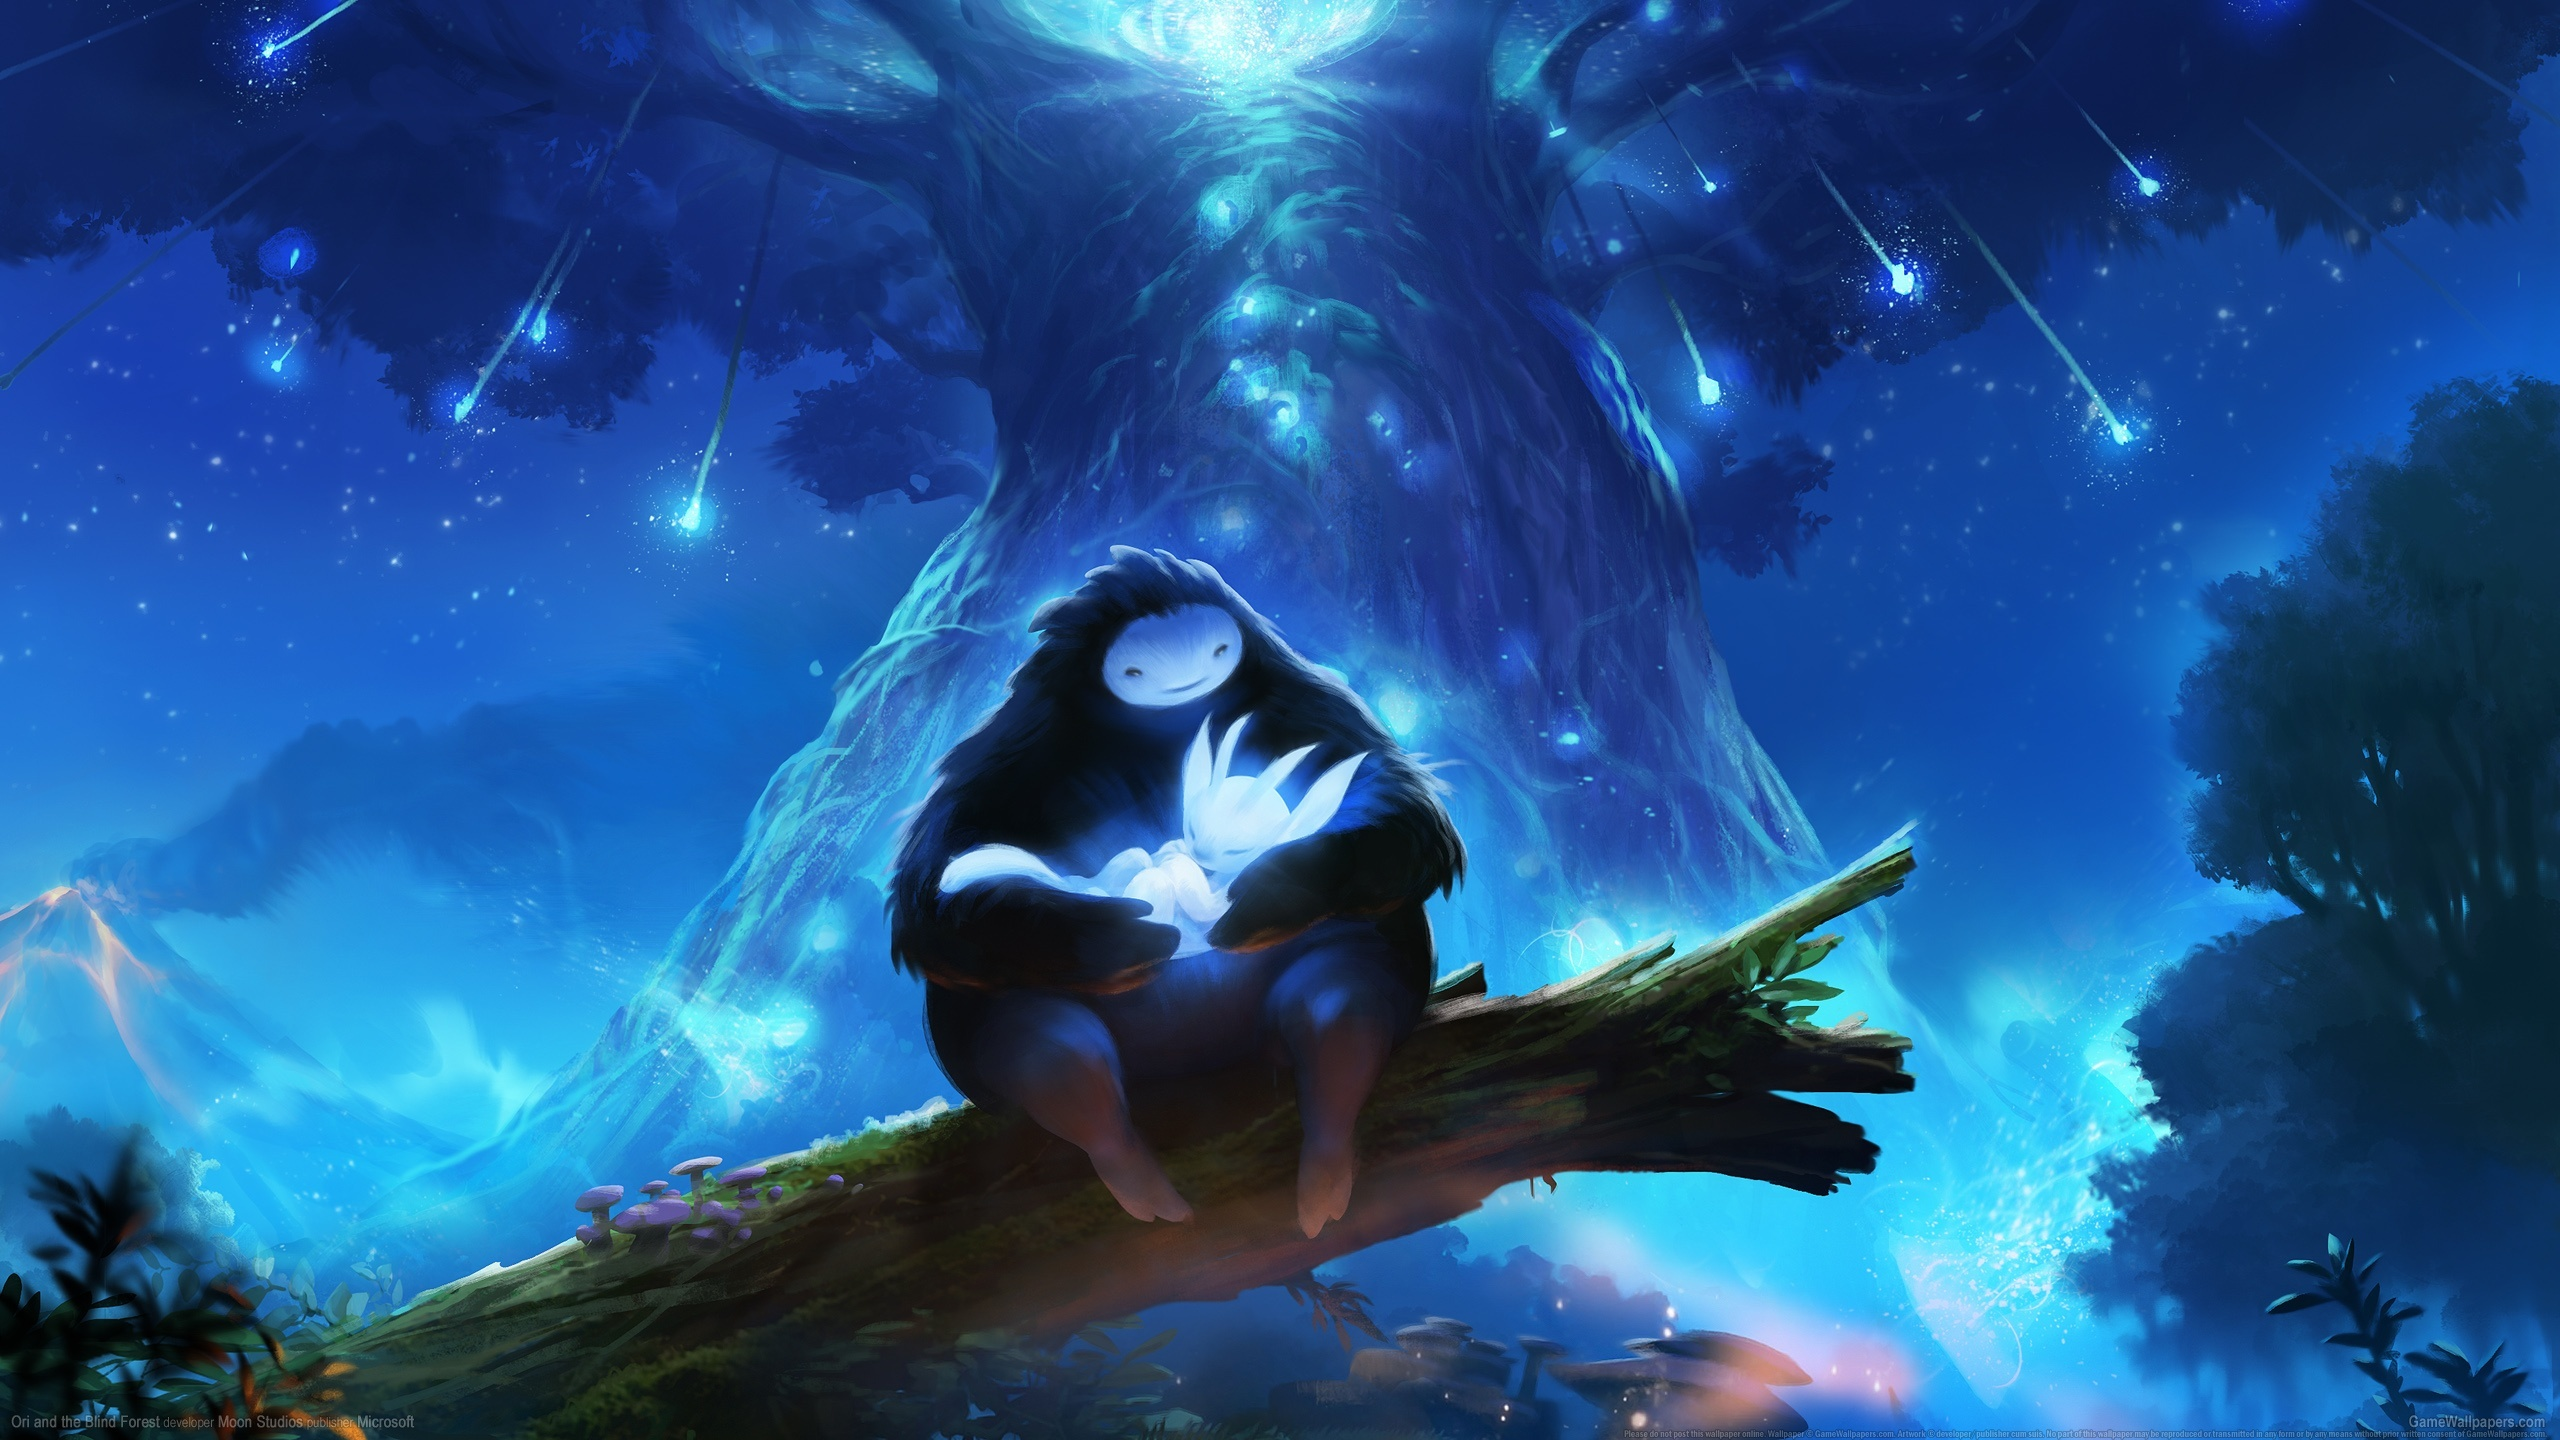 Download Wallpaper Game Indie Ori Ori And The Blind